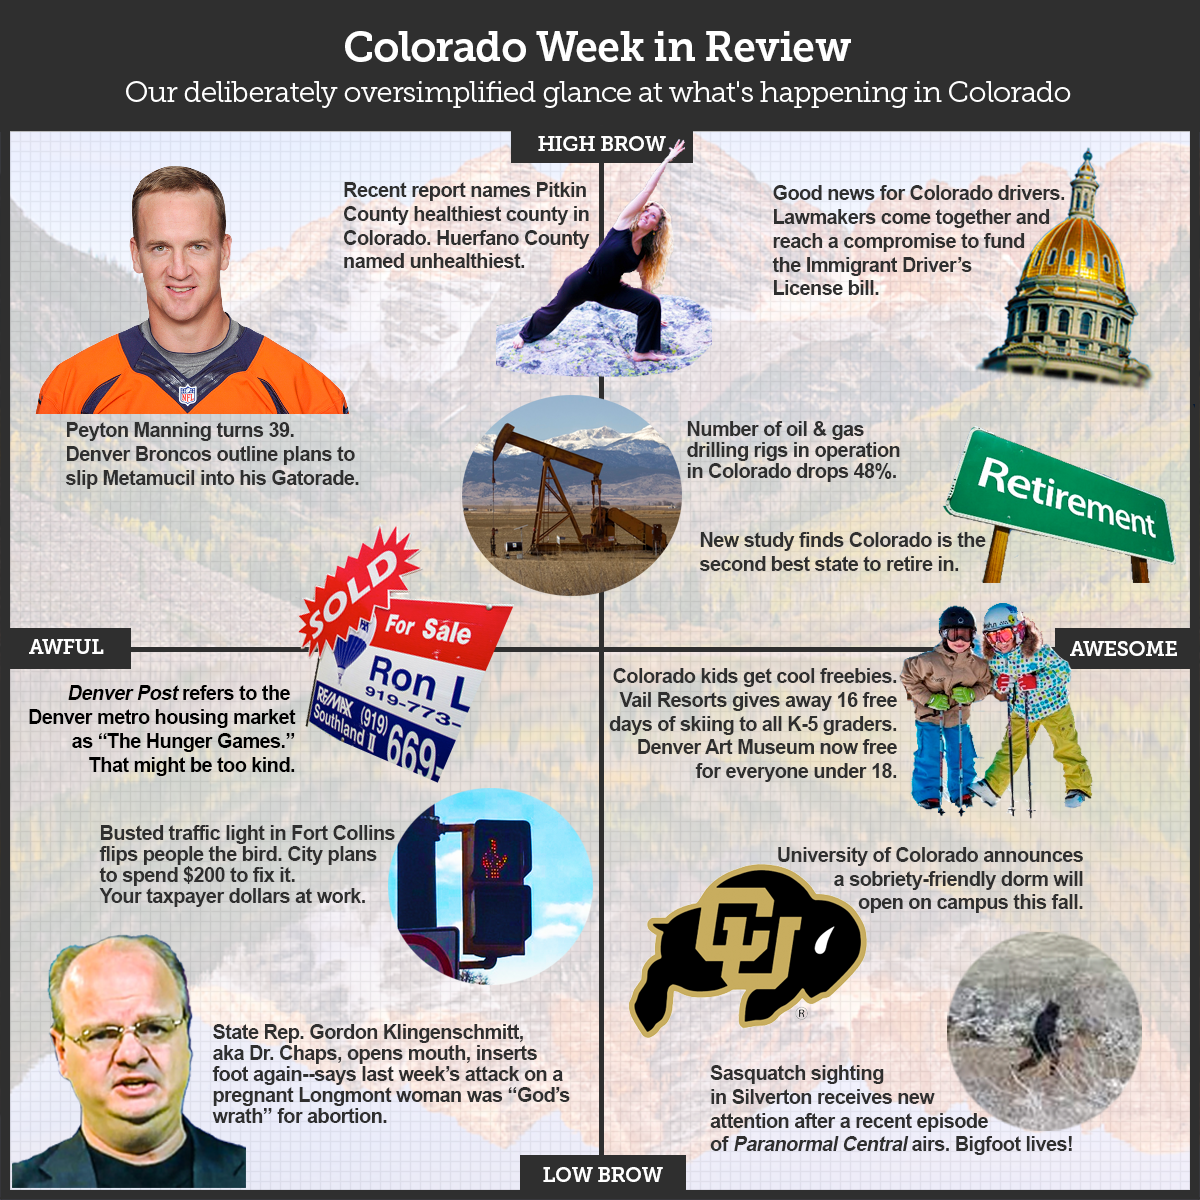 Colorado Week in Review